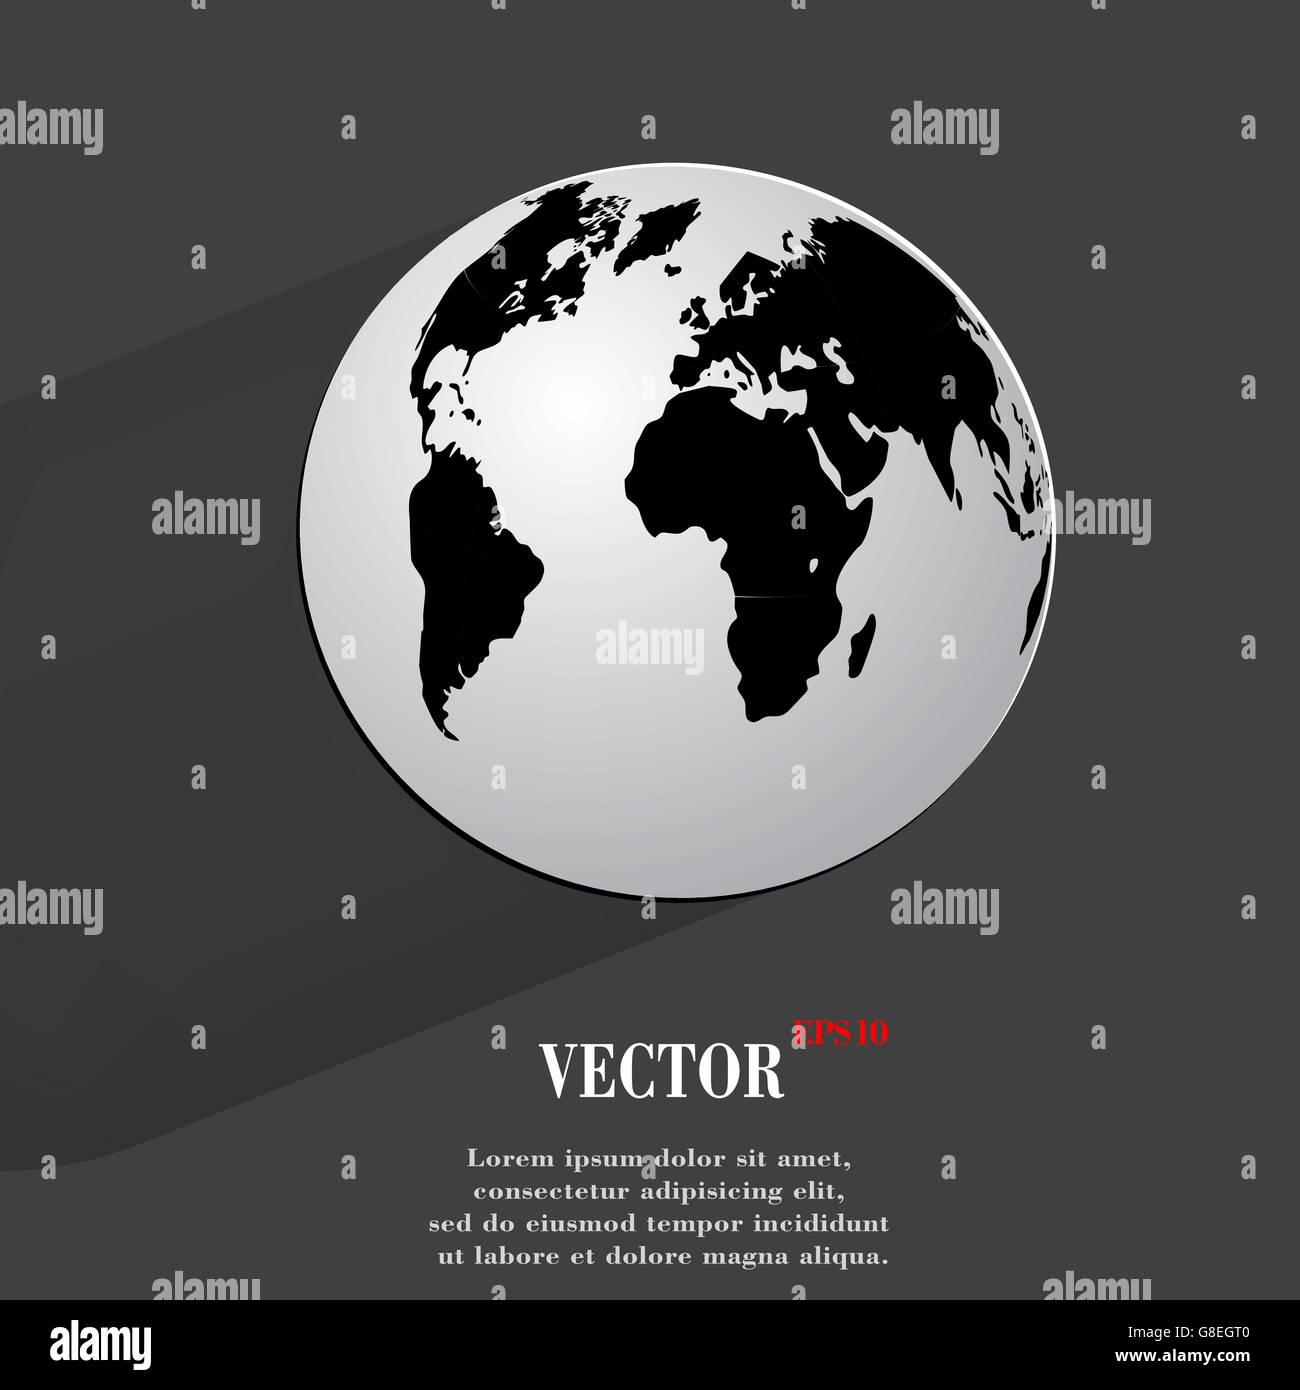 World map flat vector vectors stock photos world map flat vector world map web icon flat design vector illustration eps10 stock image gumiabroncs Image collections